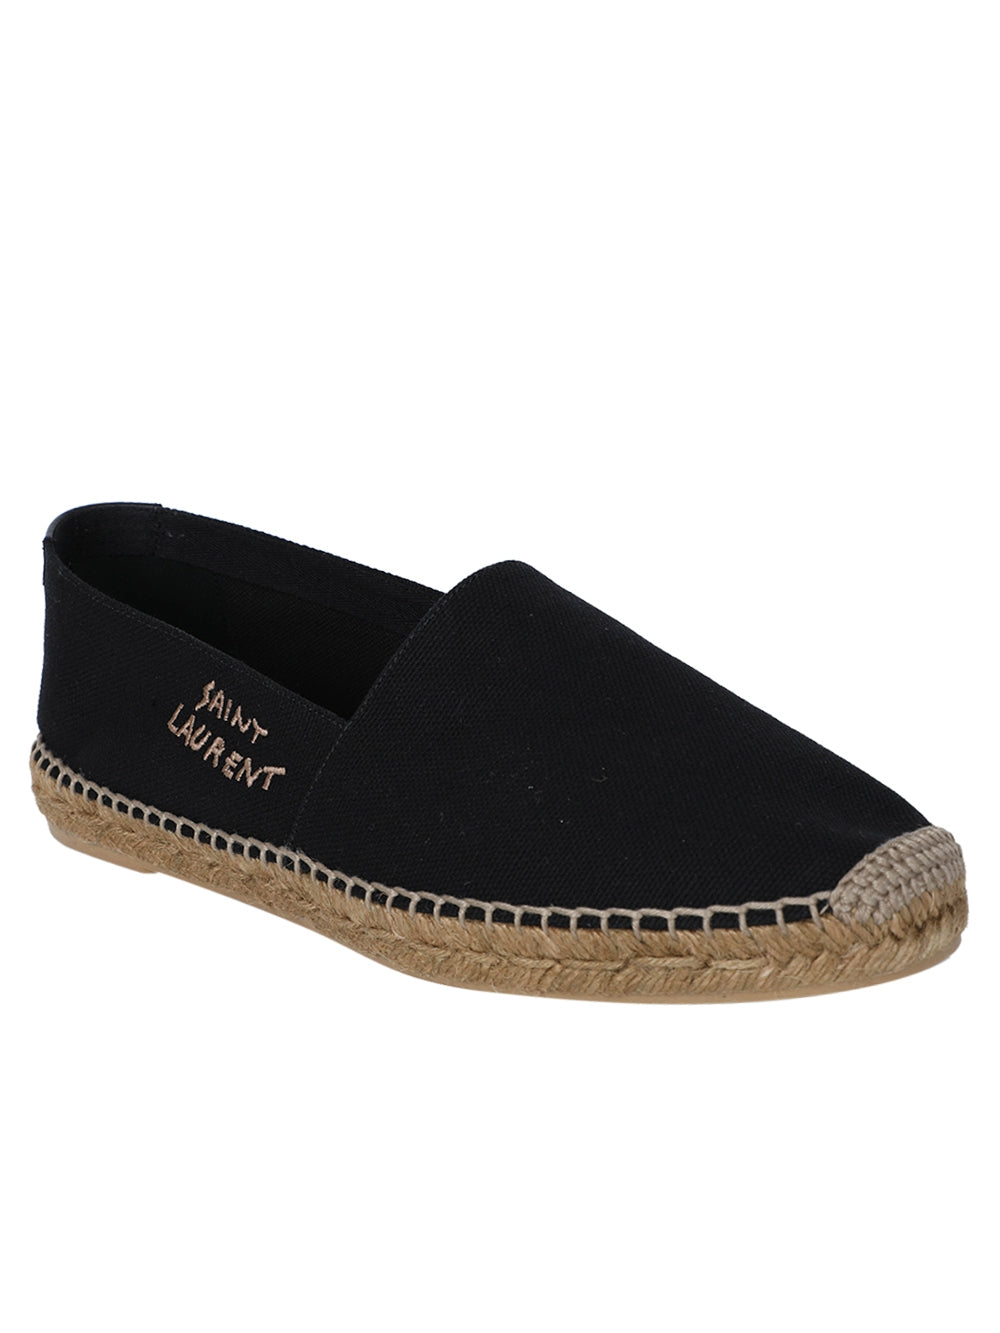 Black Braided-Jute Espadrille Flat Shoes